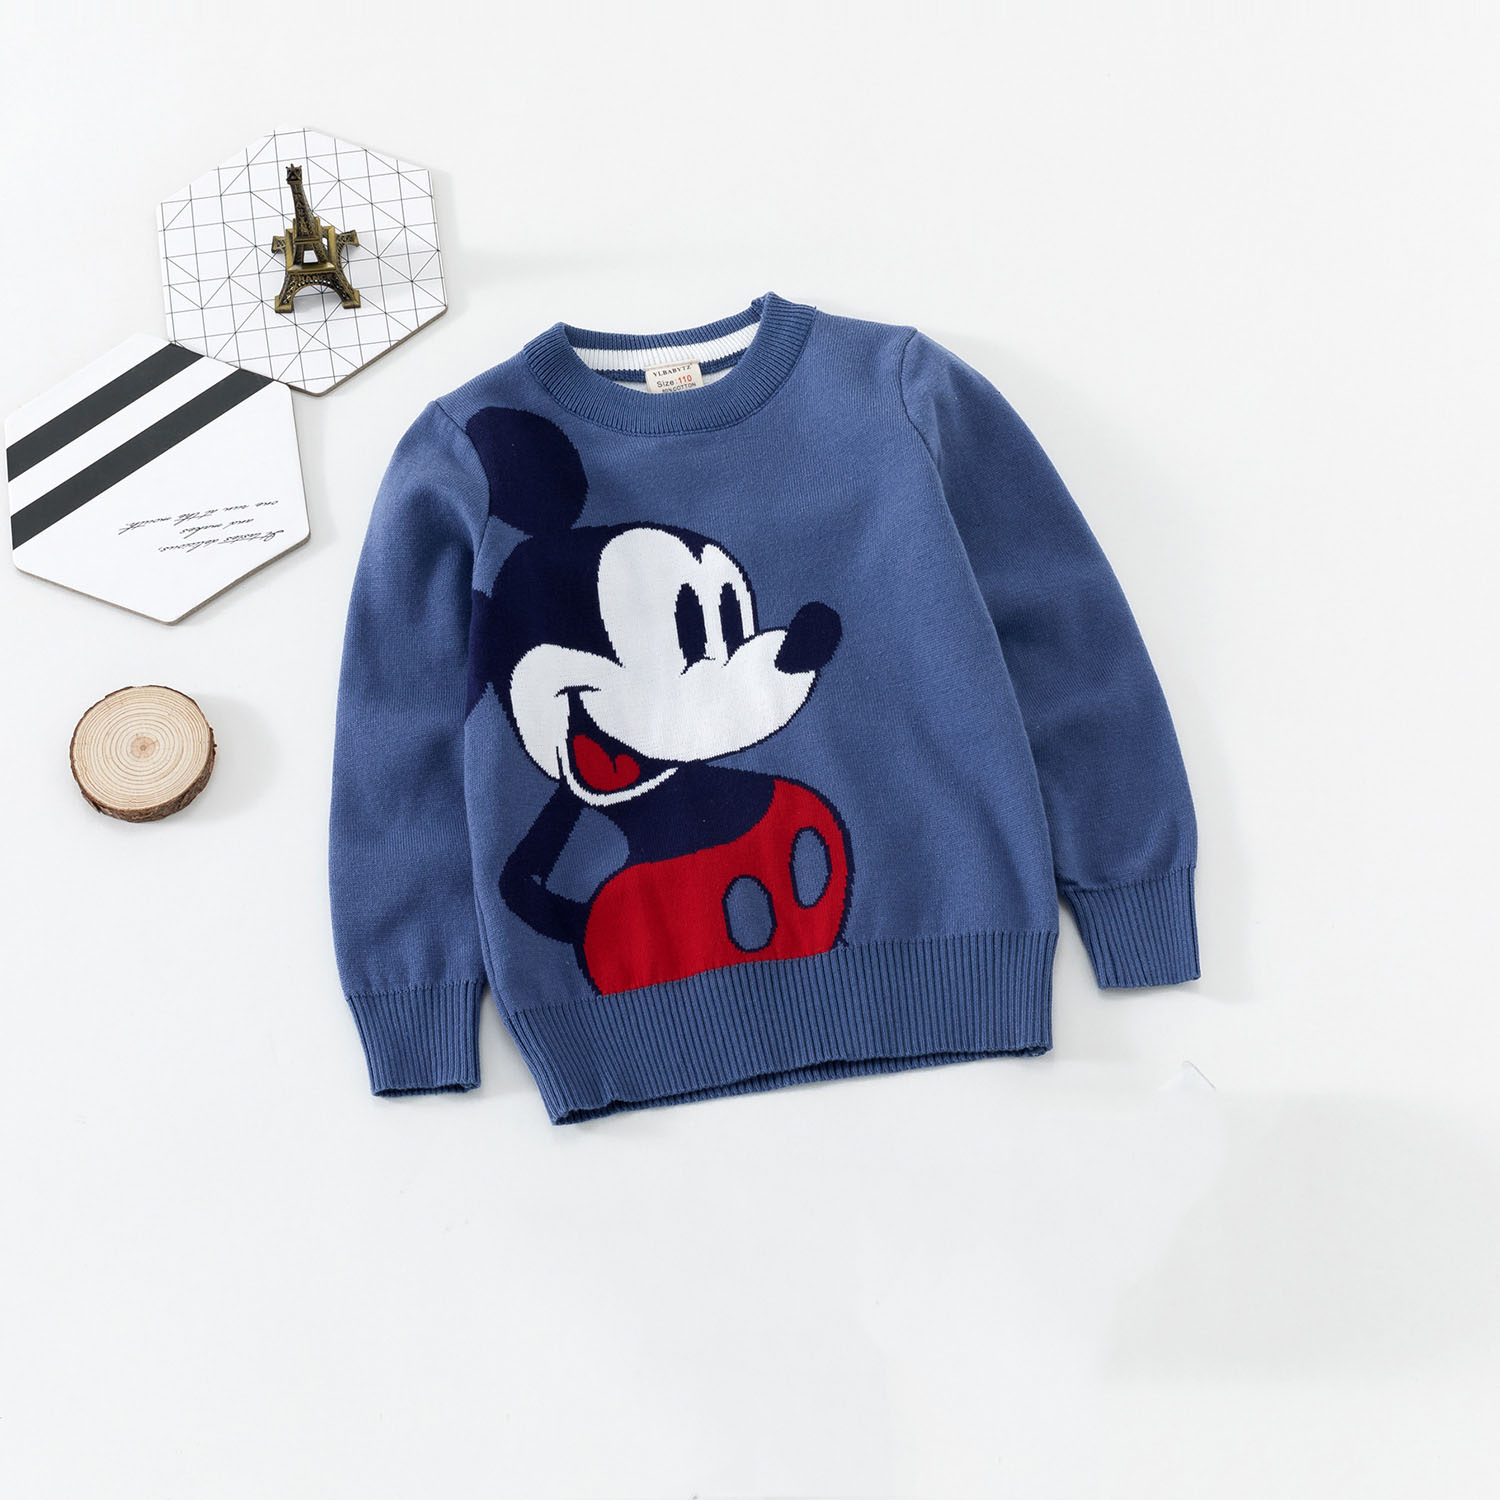 Toddler Baby Boy Sweater Cartoon Mickey Embroidery Autumun Winter Kids Double deck Minnie Kids Girl Knit Sweaters Cute Tops in Sweaters from Mother Kids